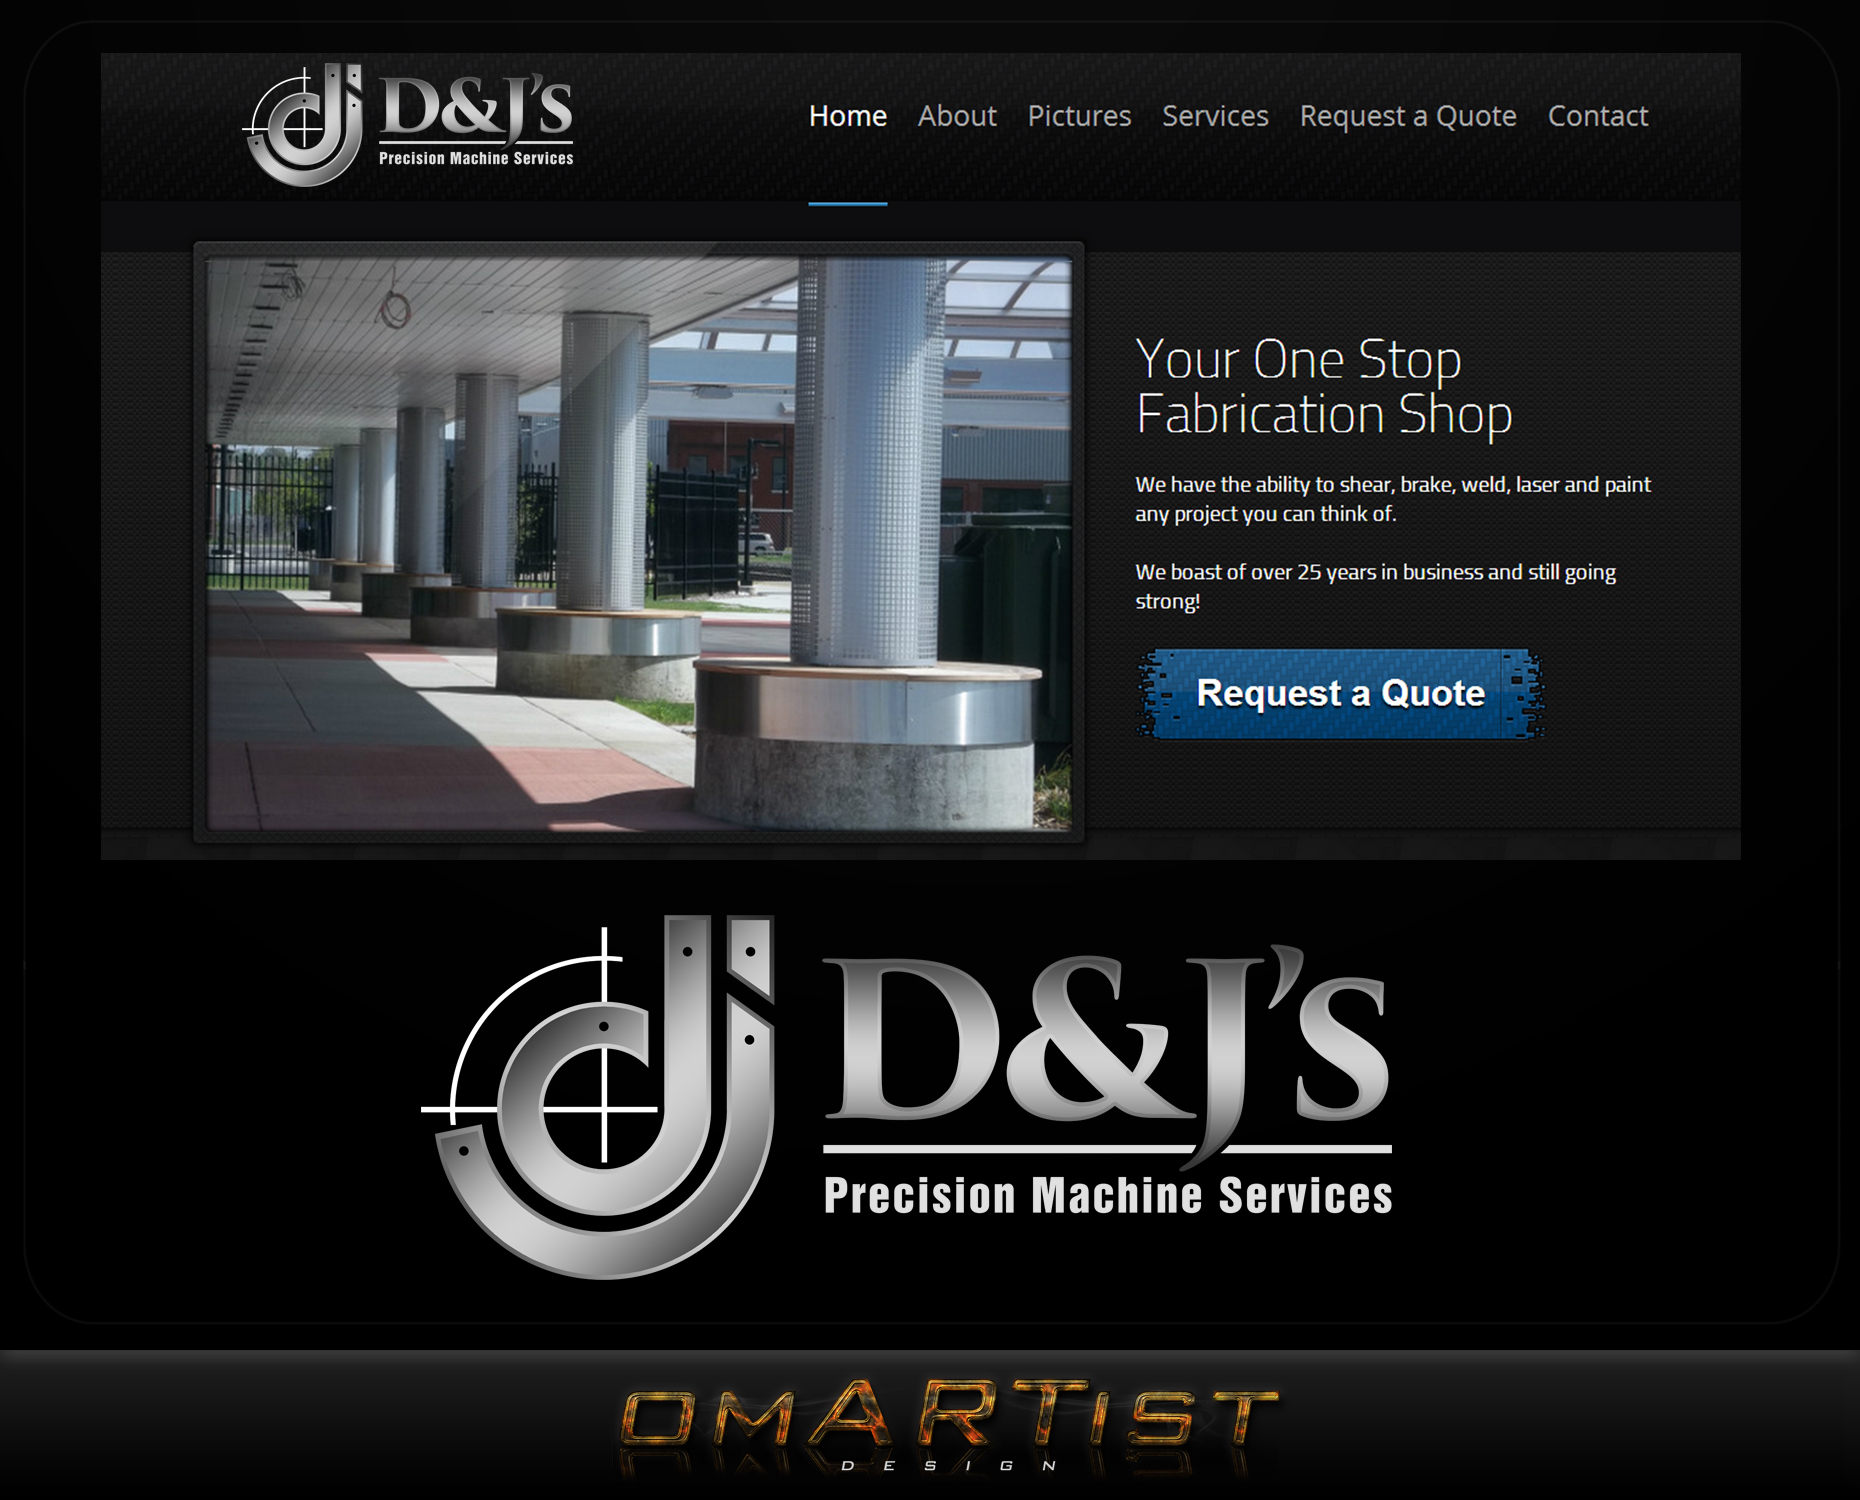 Logo Design by omARTist - Entry No. 98 in the Logo Design Contest Creative Logo Design for D & J's Precision Machine Services.